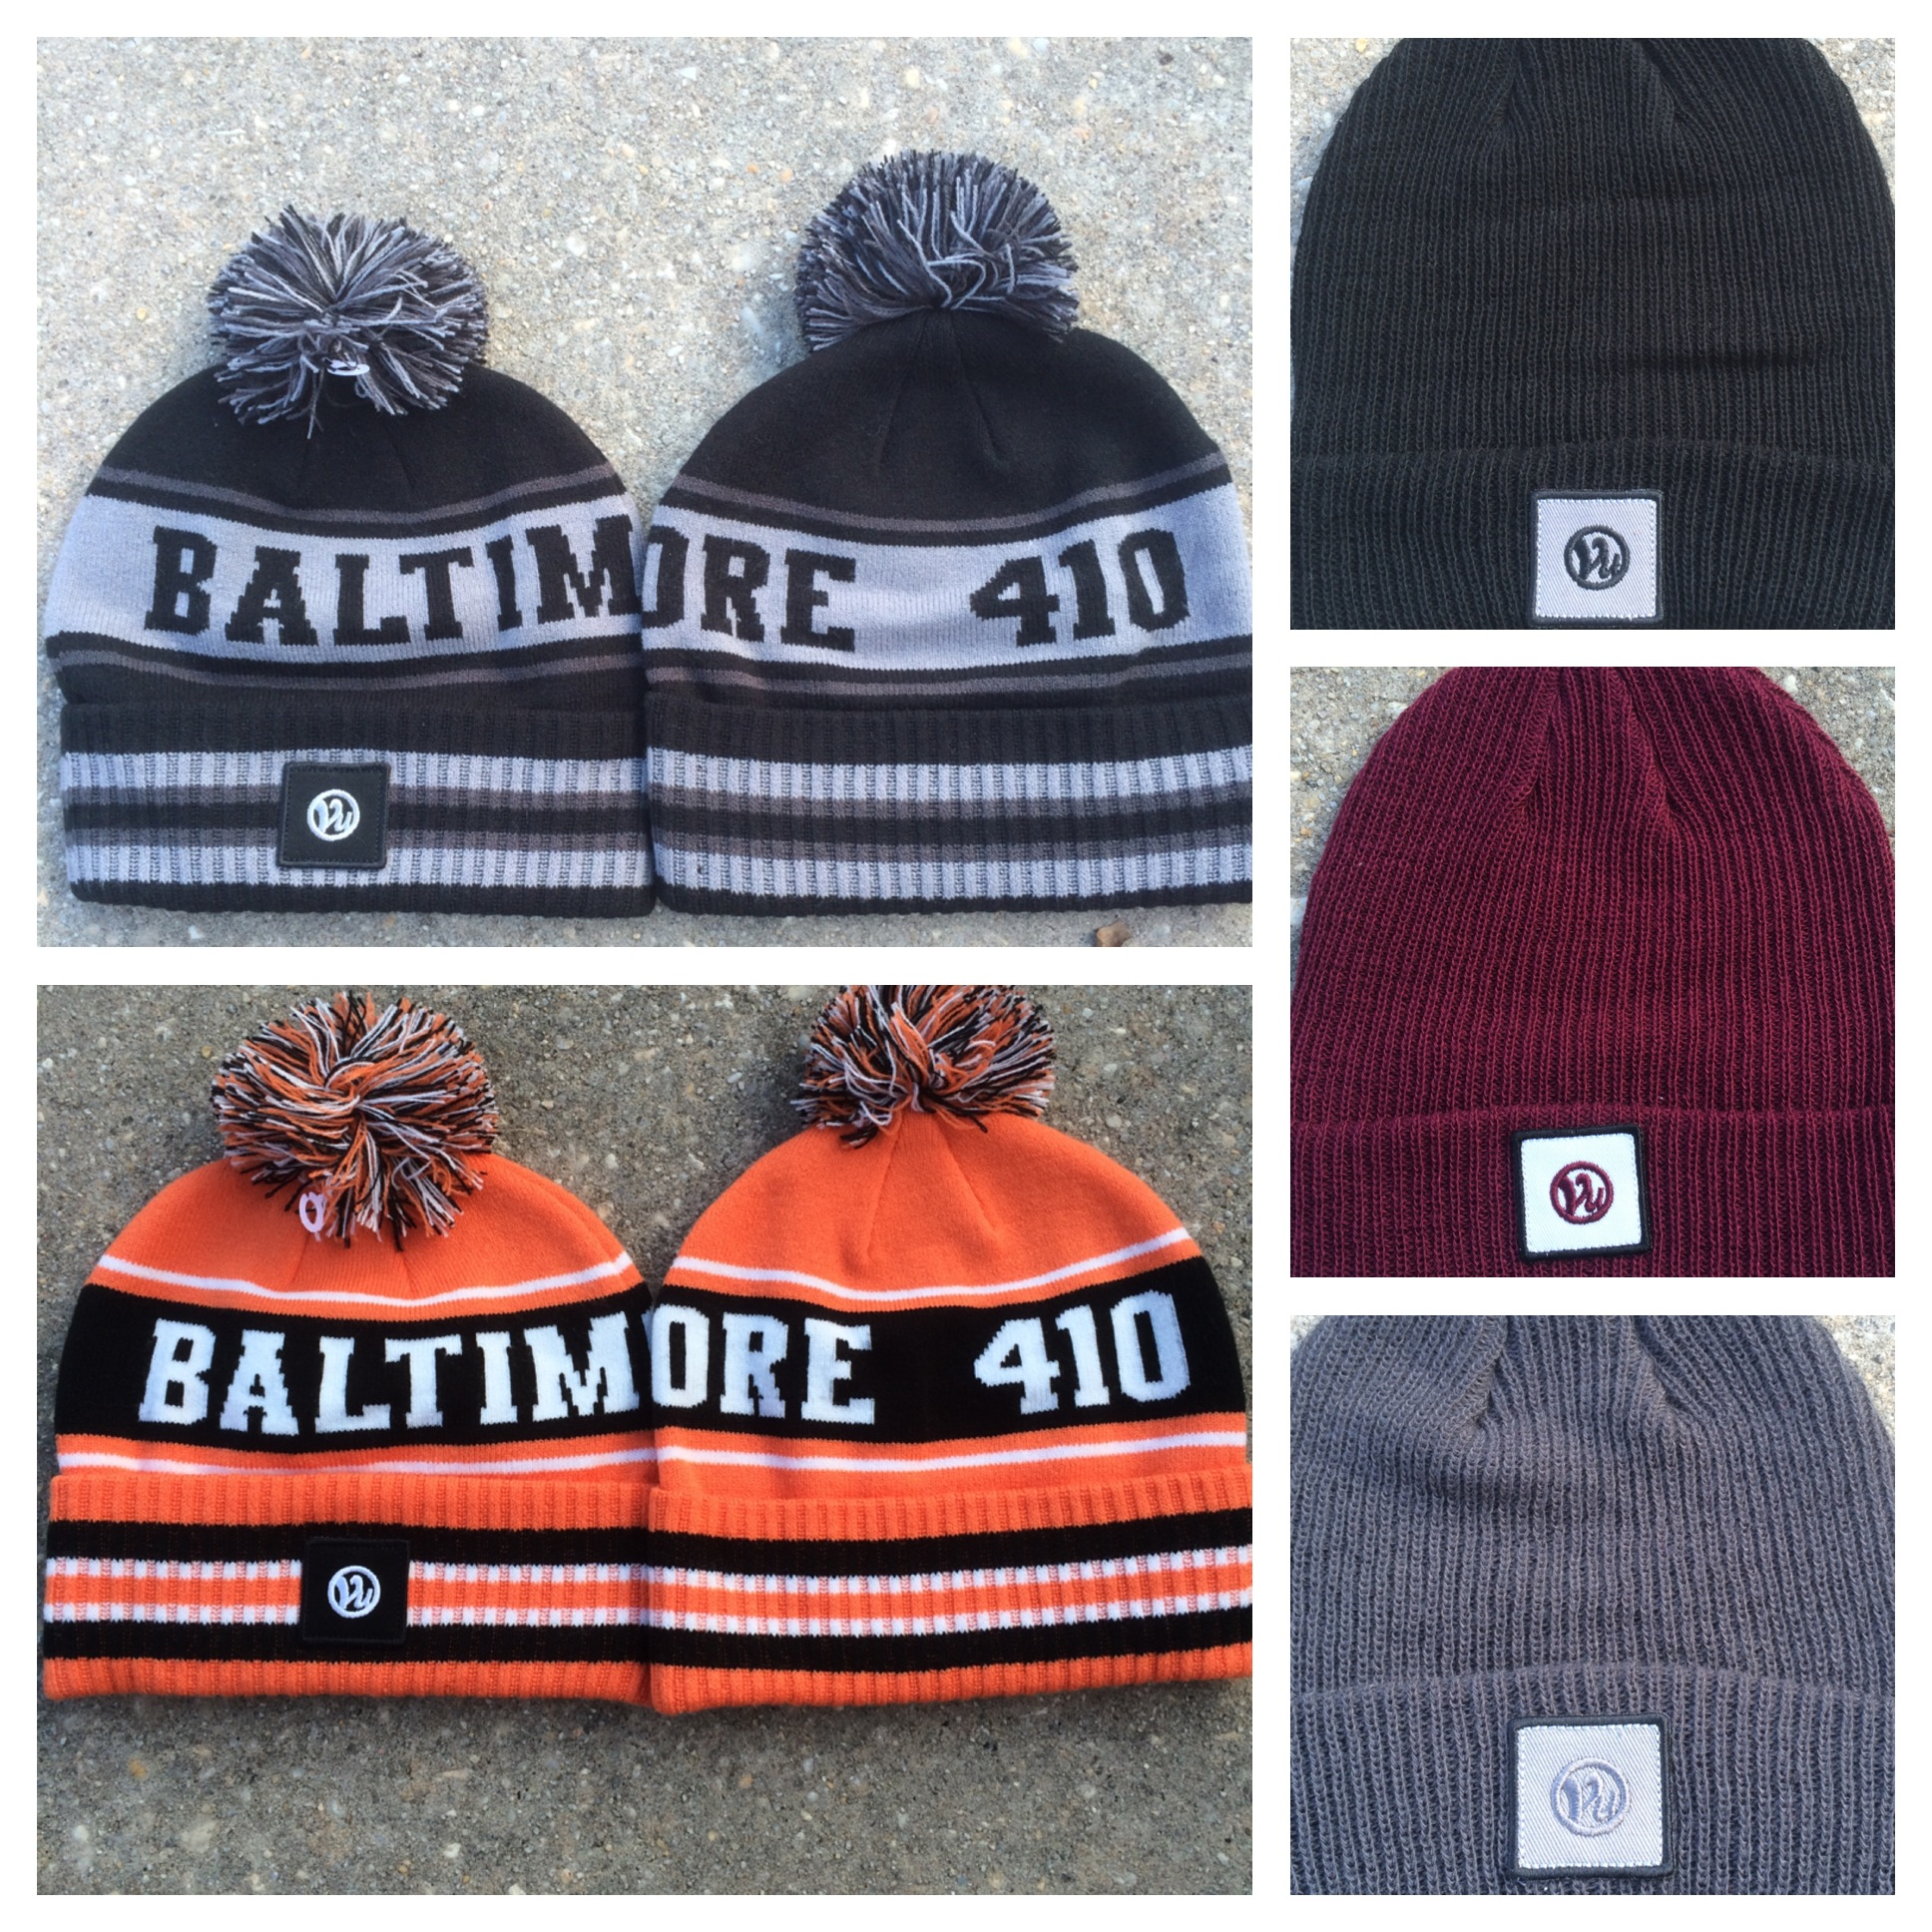 1bd6b27cd5e New Shop Beanies Just Came In At Both Store Locations vú skateboard shop